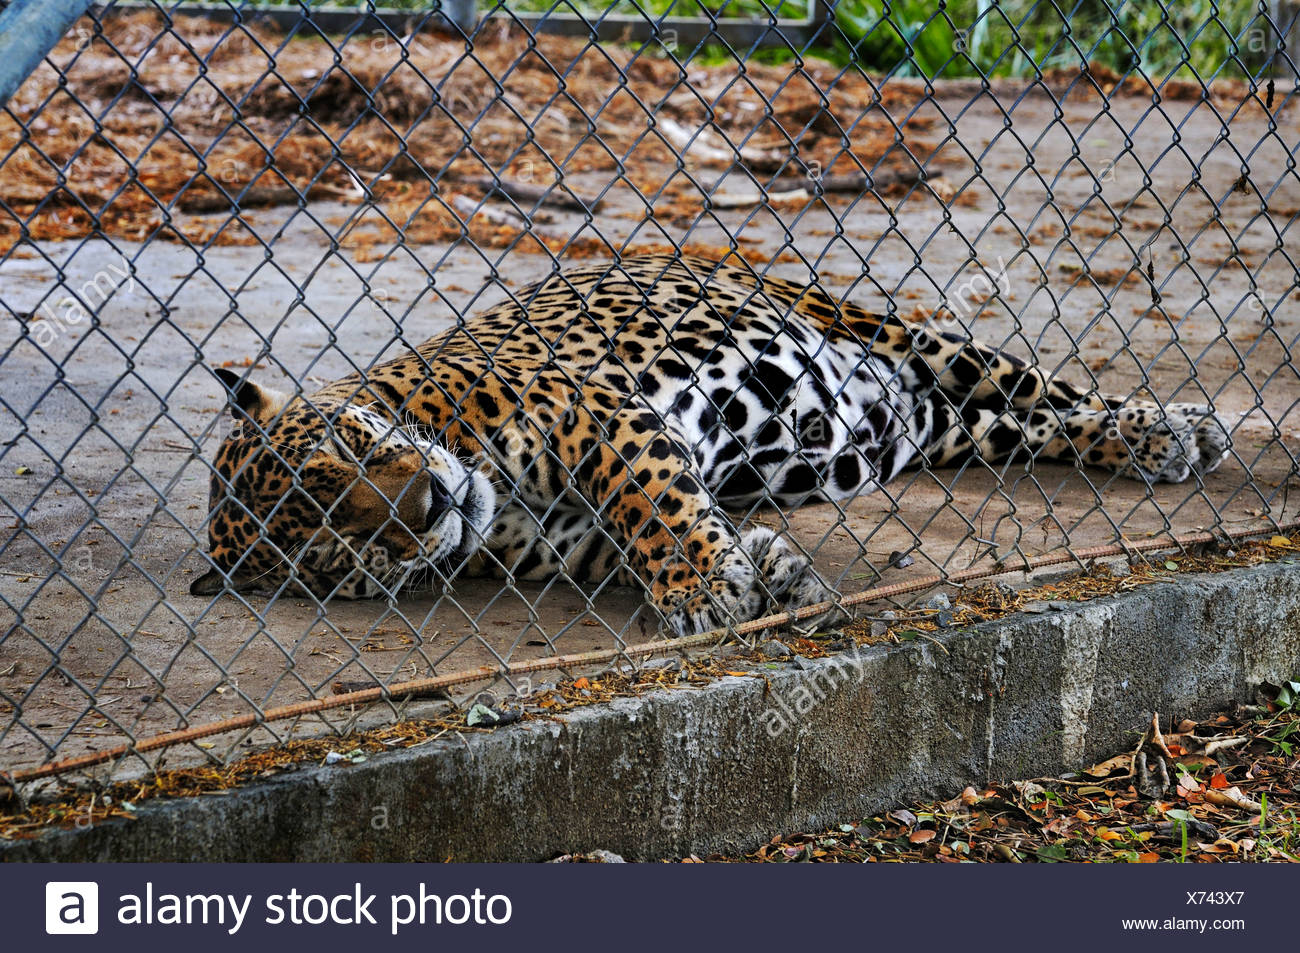 Jaguar (Panthera onca) behind wire netting, Las Pumas, animal rescue center, province of Guanacaste, Costa Rica, Central America - Stock Image